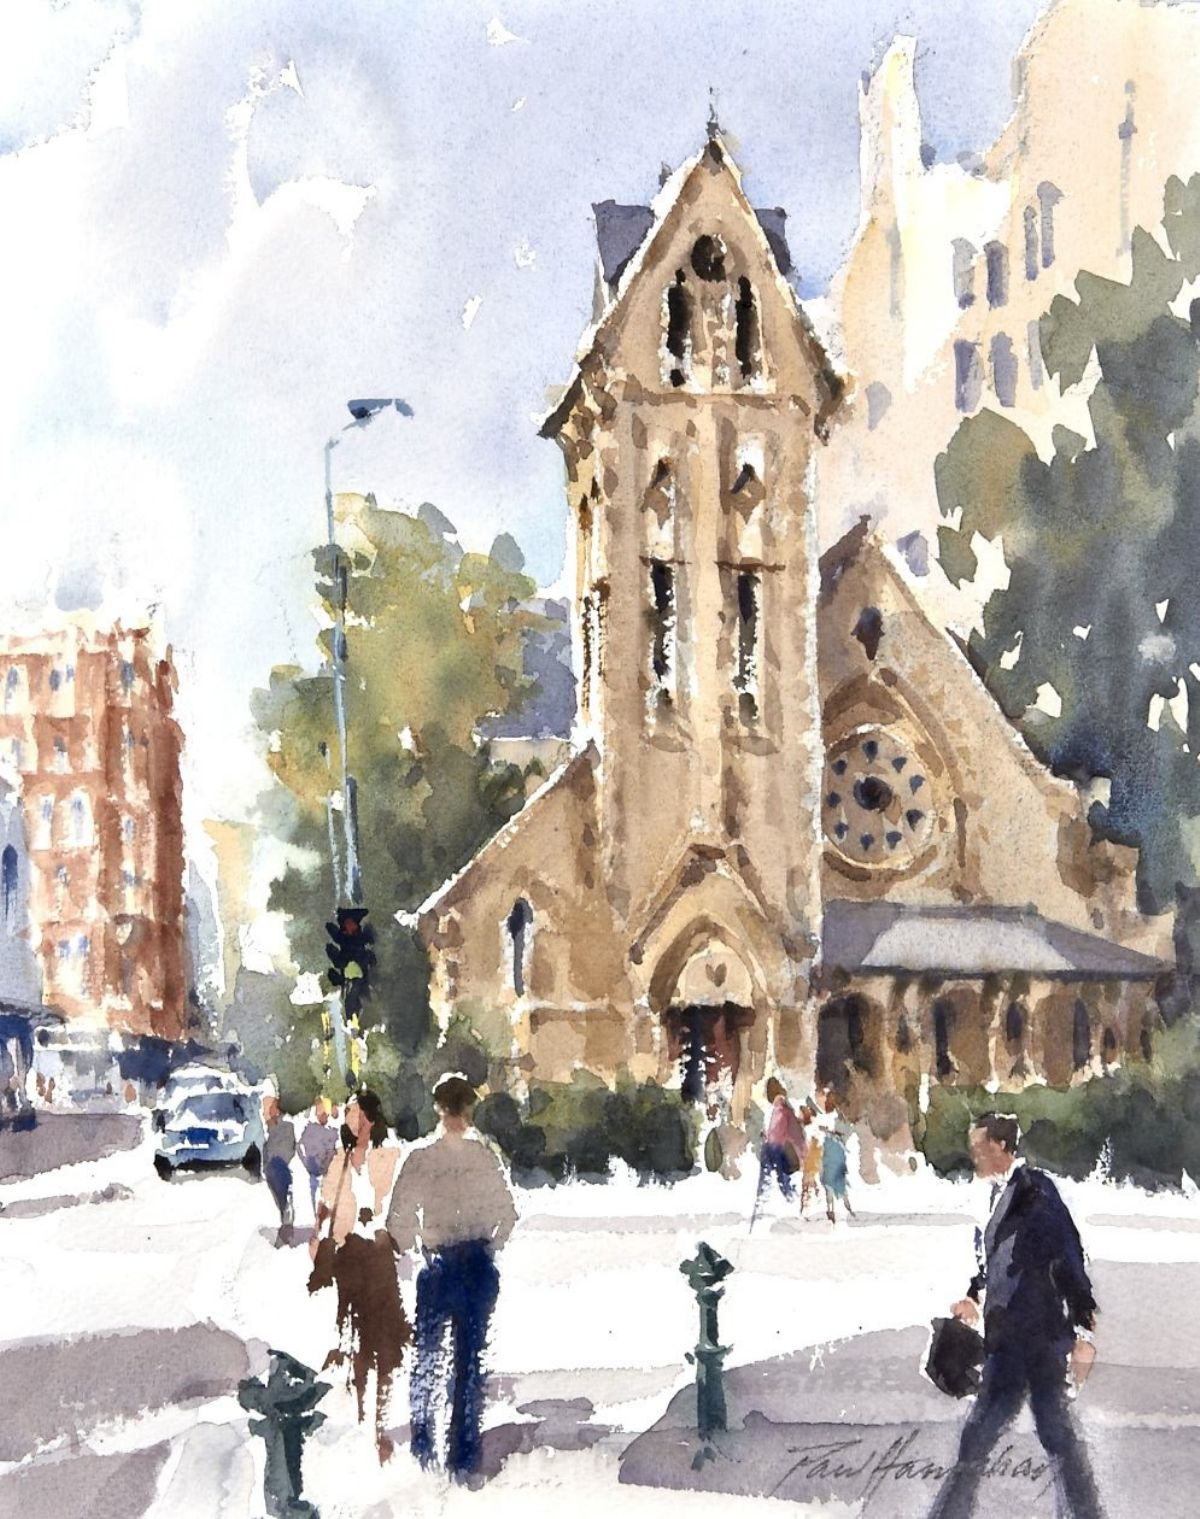 Trinity Church Worcester Manchester Streets artwork by Paul Hanrahan - art listed for sale on Artplode